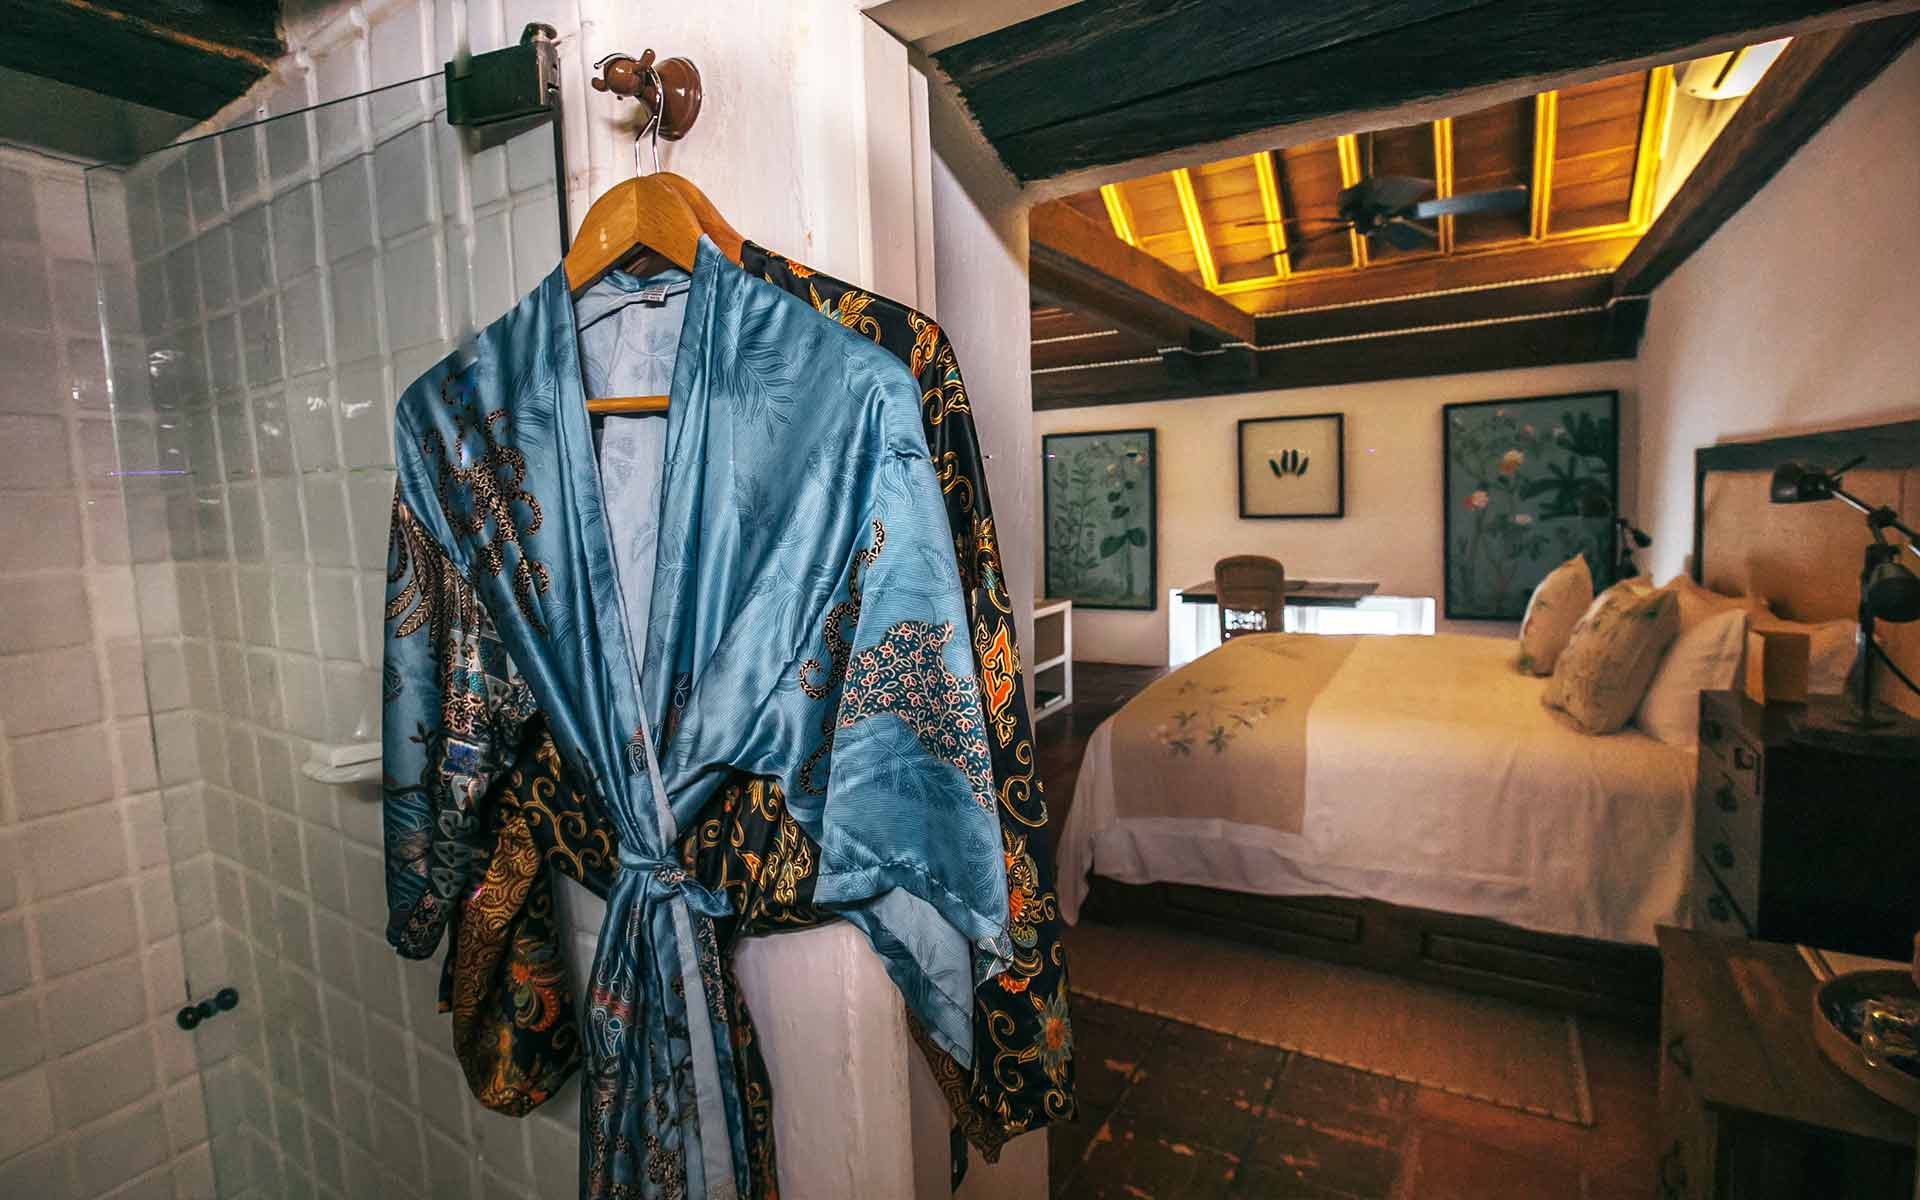 view of bed with shower and two silk robes hanging in the foreground